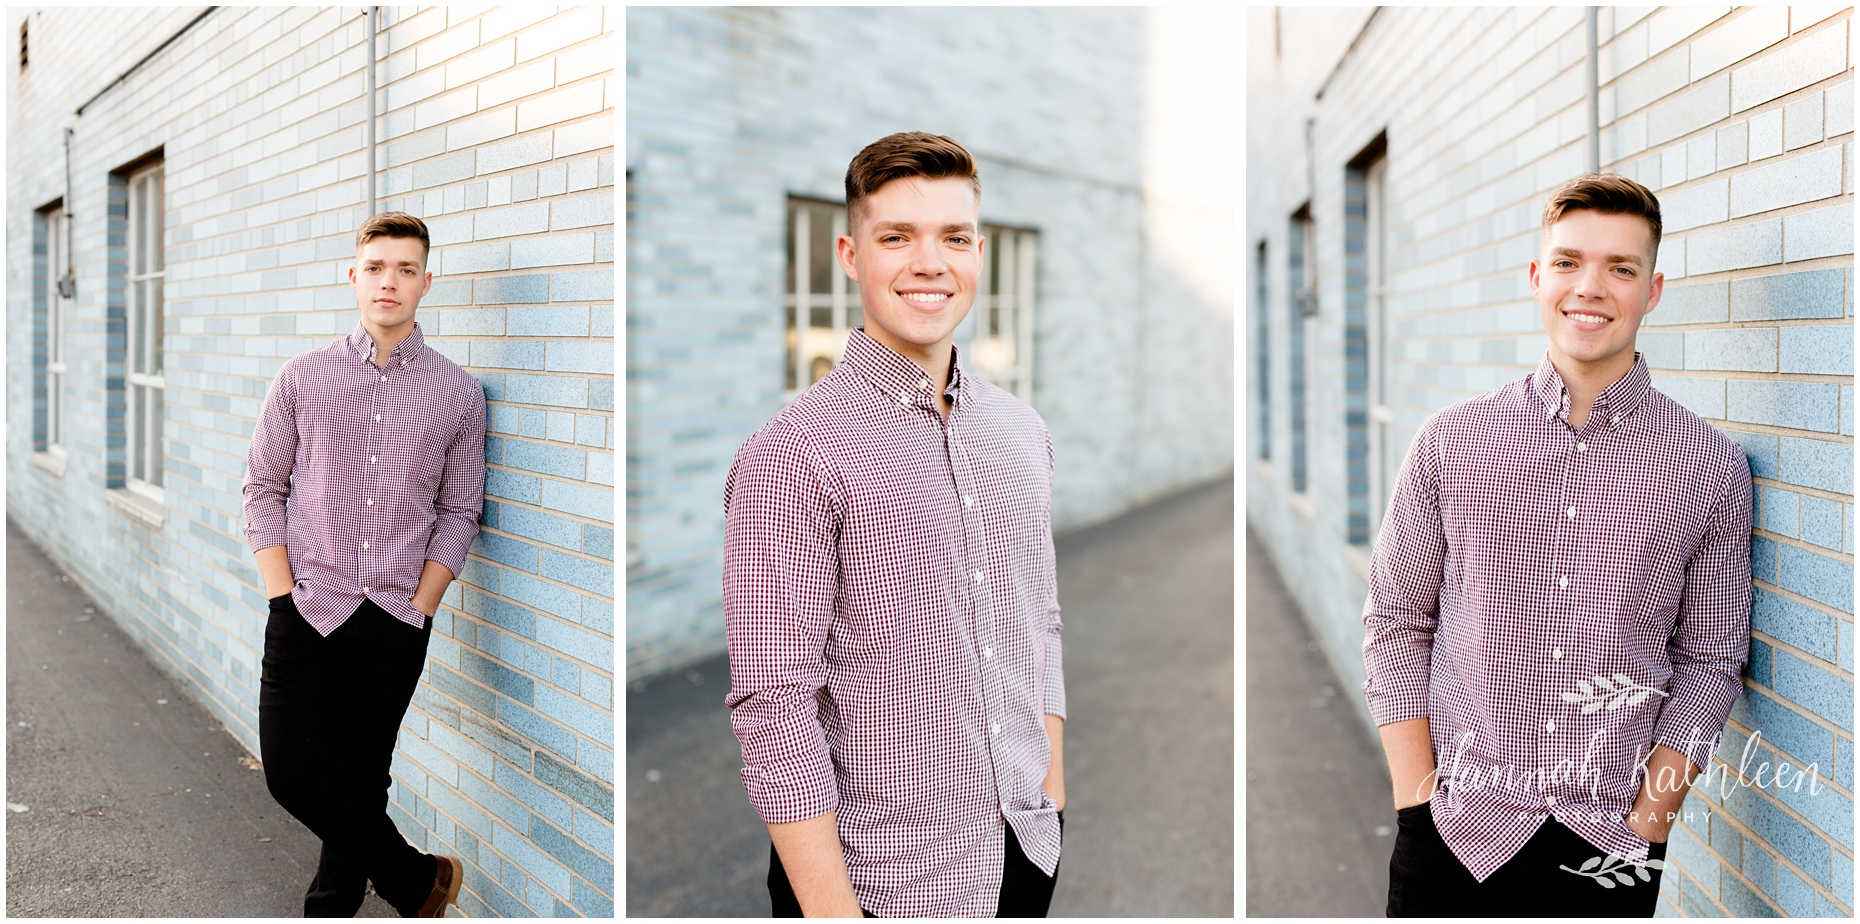 Alec_Senior_Graduation_Photos_Photography_Downtown_Buffalo_NY